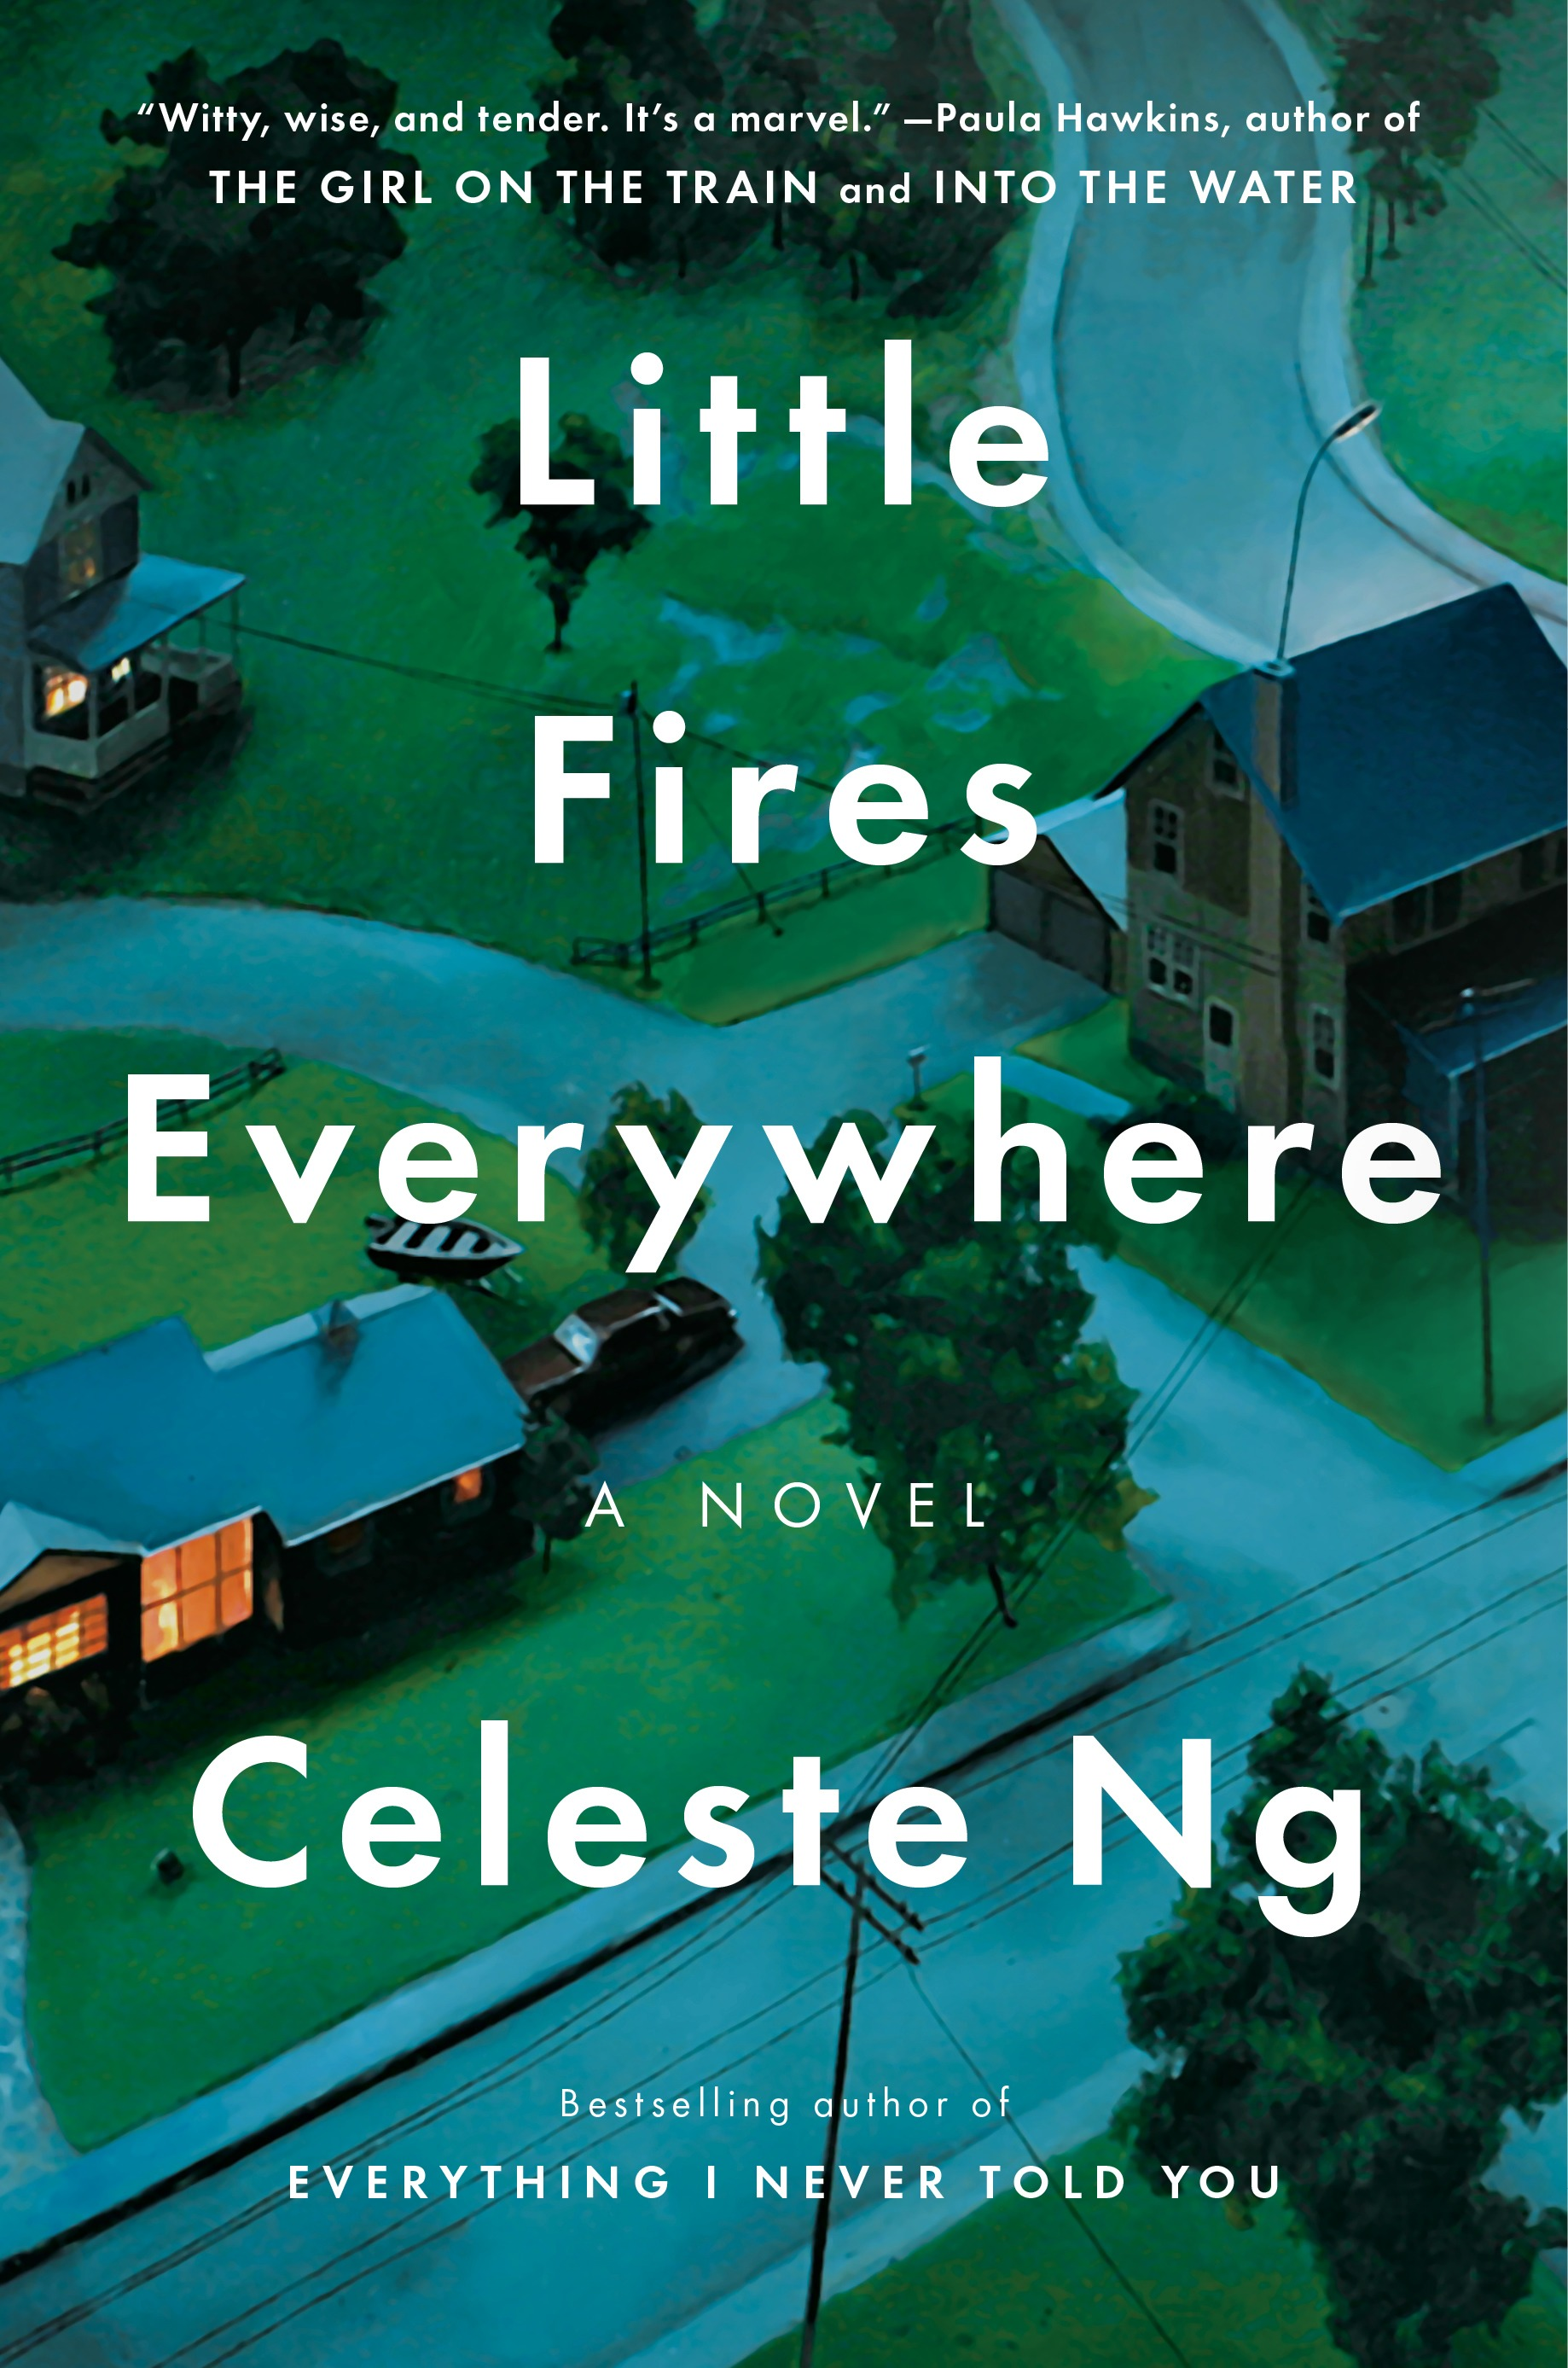 &quot;Little Fires Everywhere&quot; by Celeste Ng (Image: Courtesy Penguin Press)<p></p>